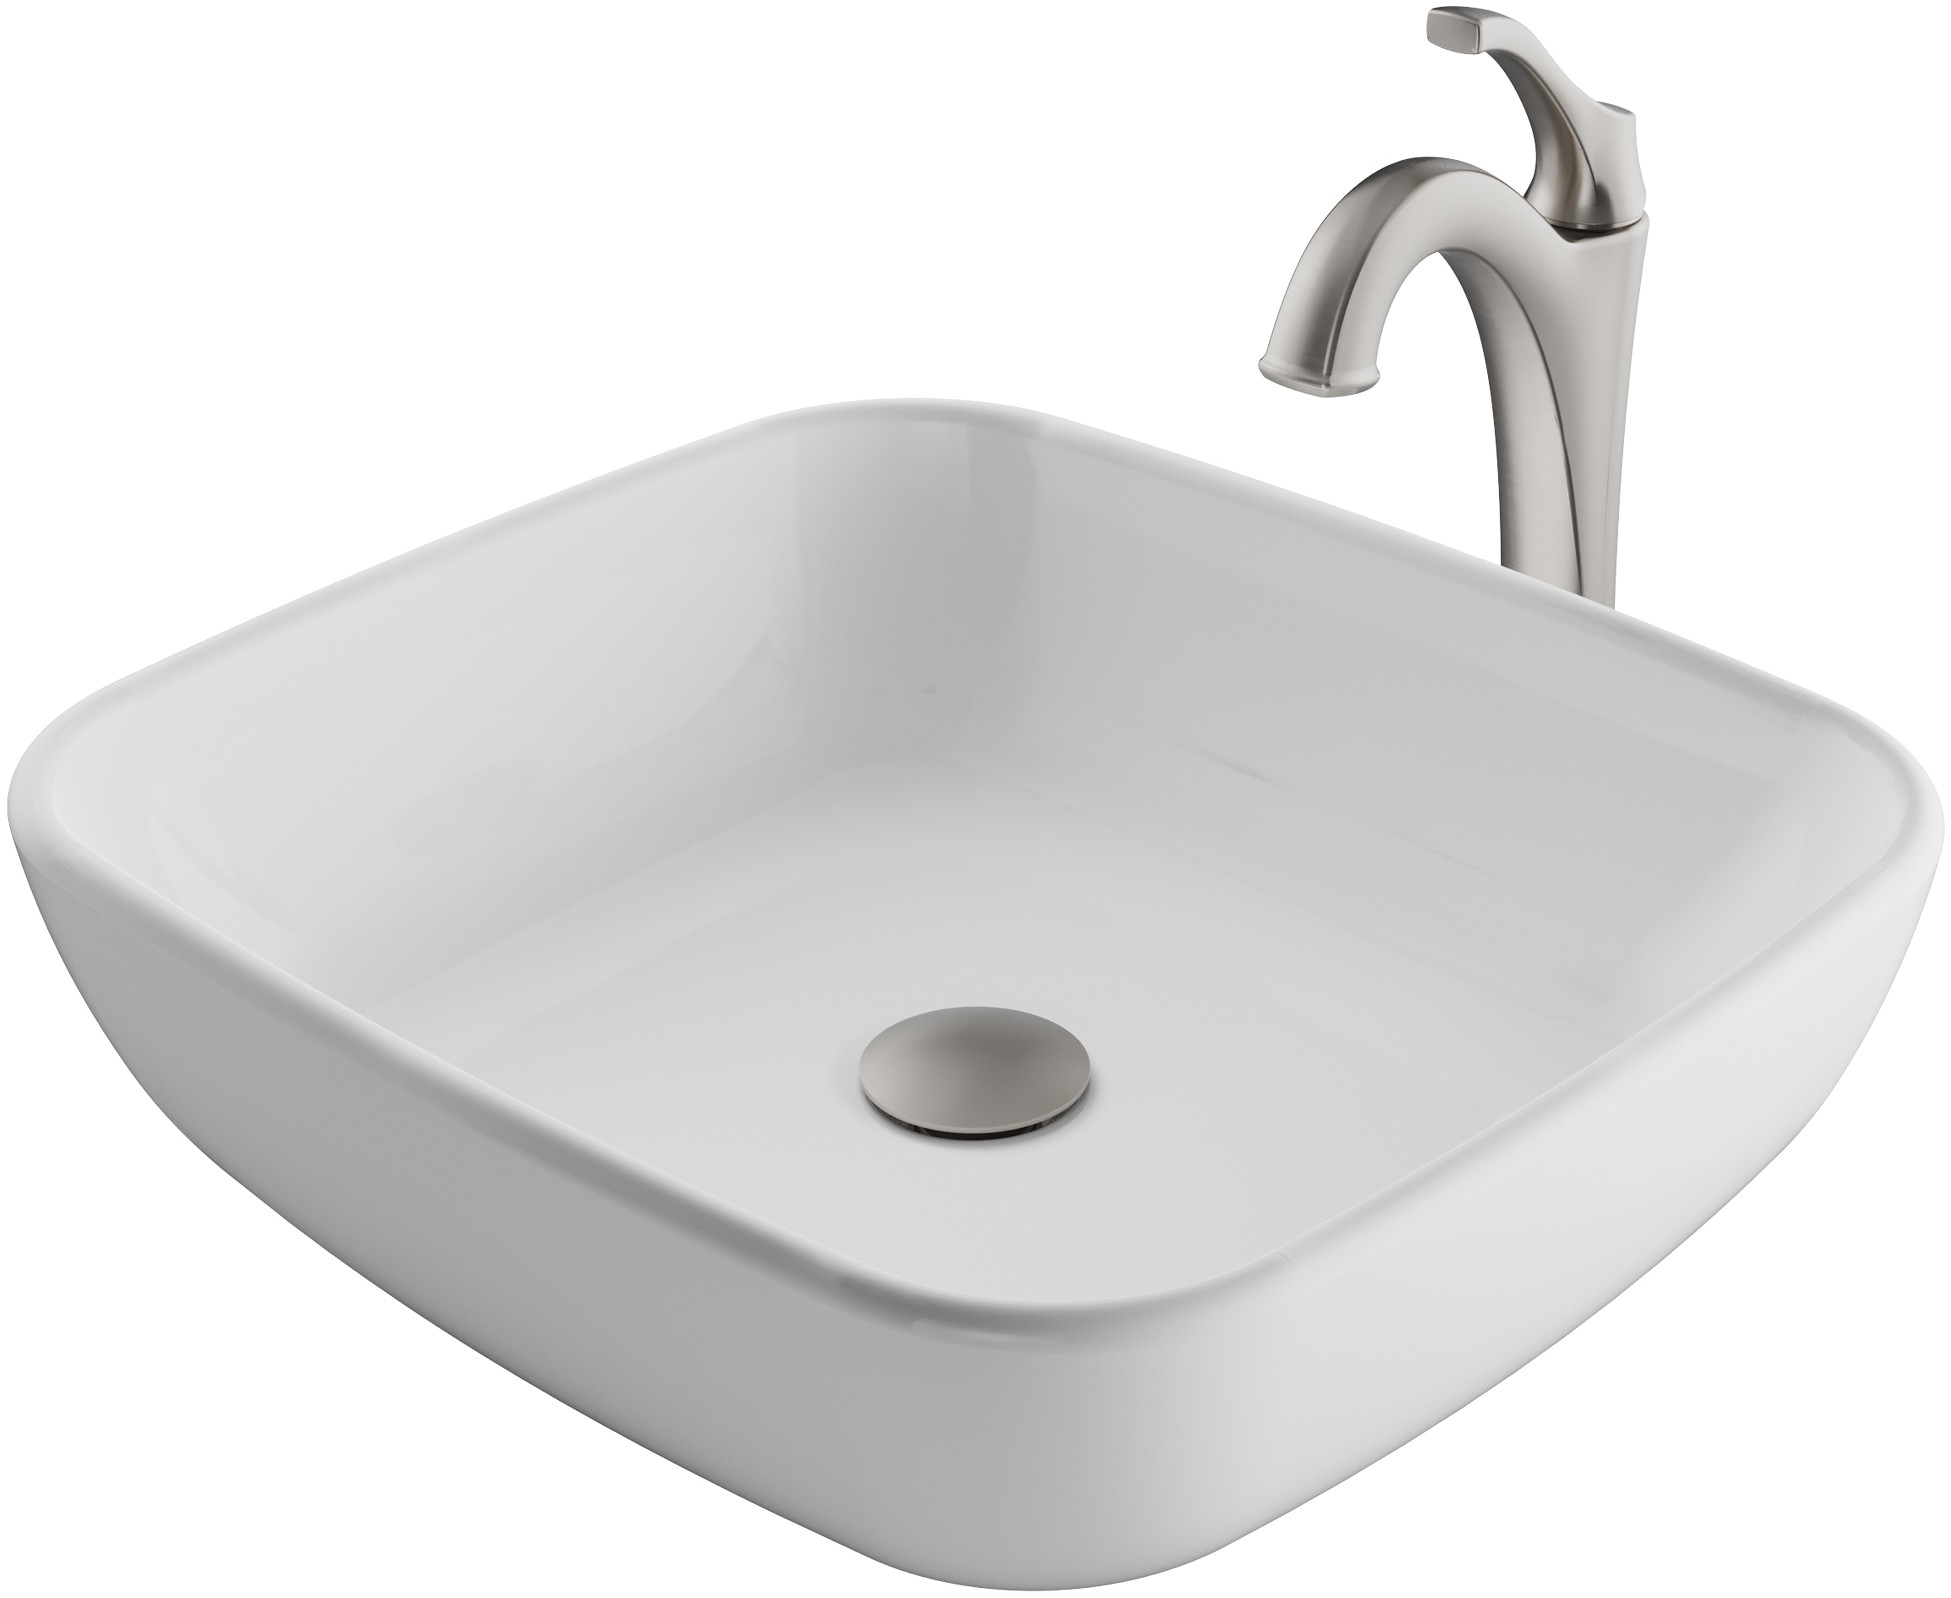 Kraus Ckcv1271200sfs 18 Inch Square White Porcelain Ceramic Bathroom Vessel Sink And Arlo Faucet Combo Set With Pop Up Drain Stainless Brushed Nickel